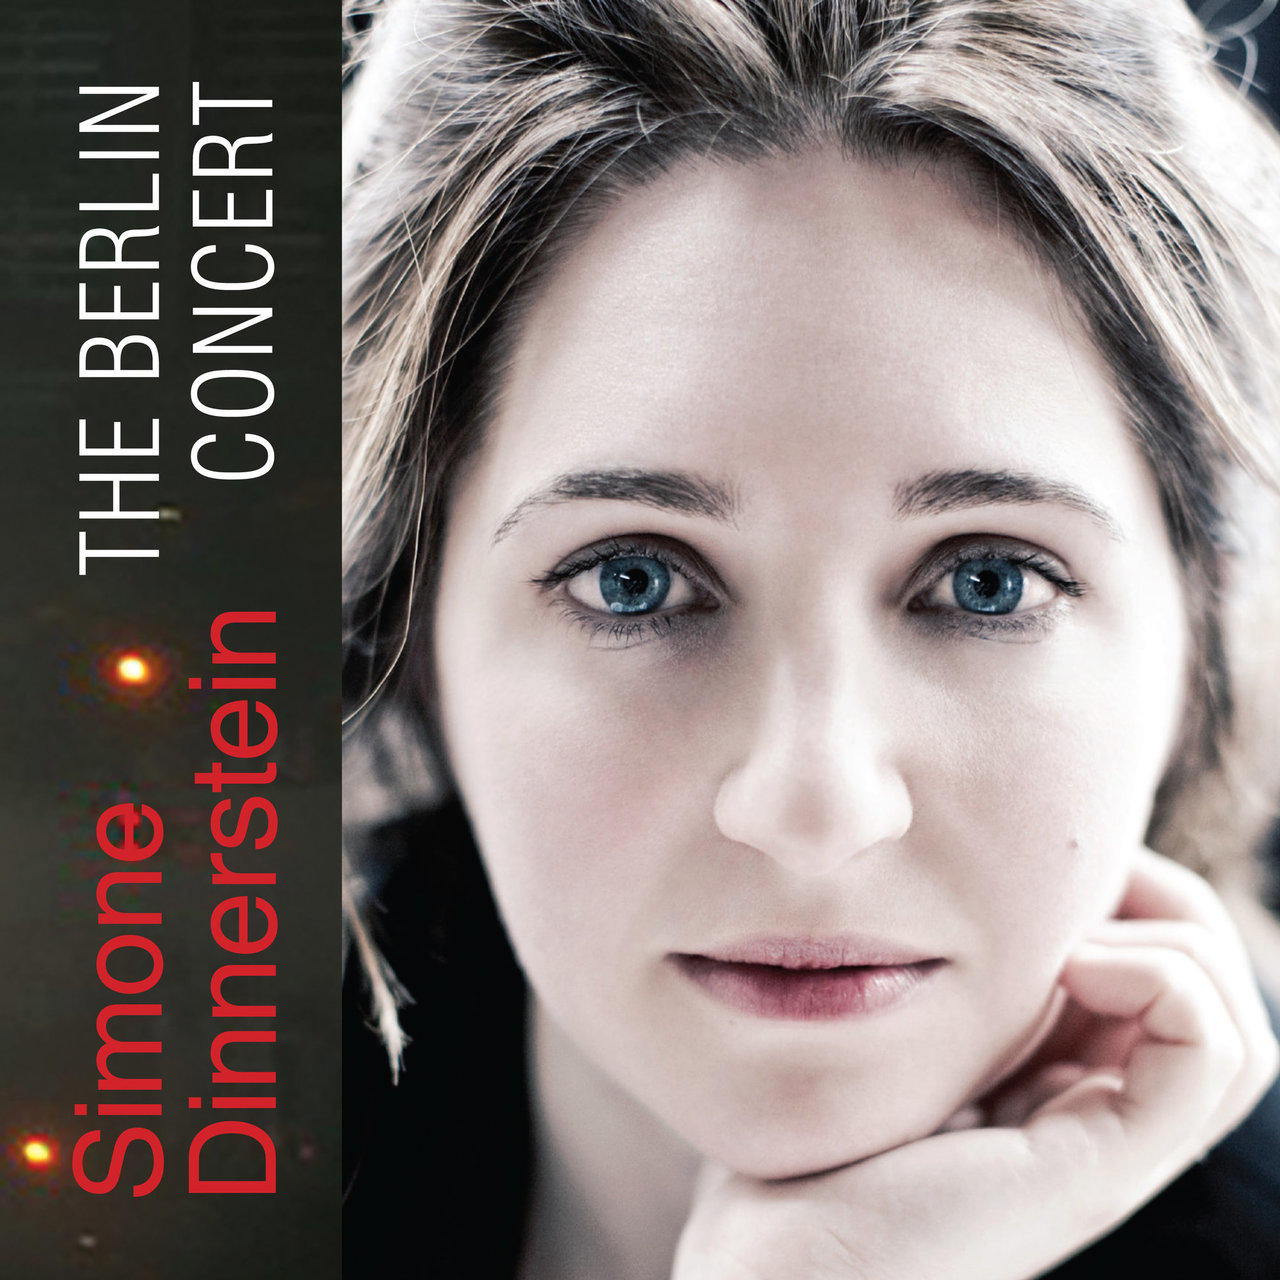 Simone Dinnerstein - The Berlin Concert (2019)